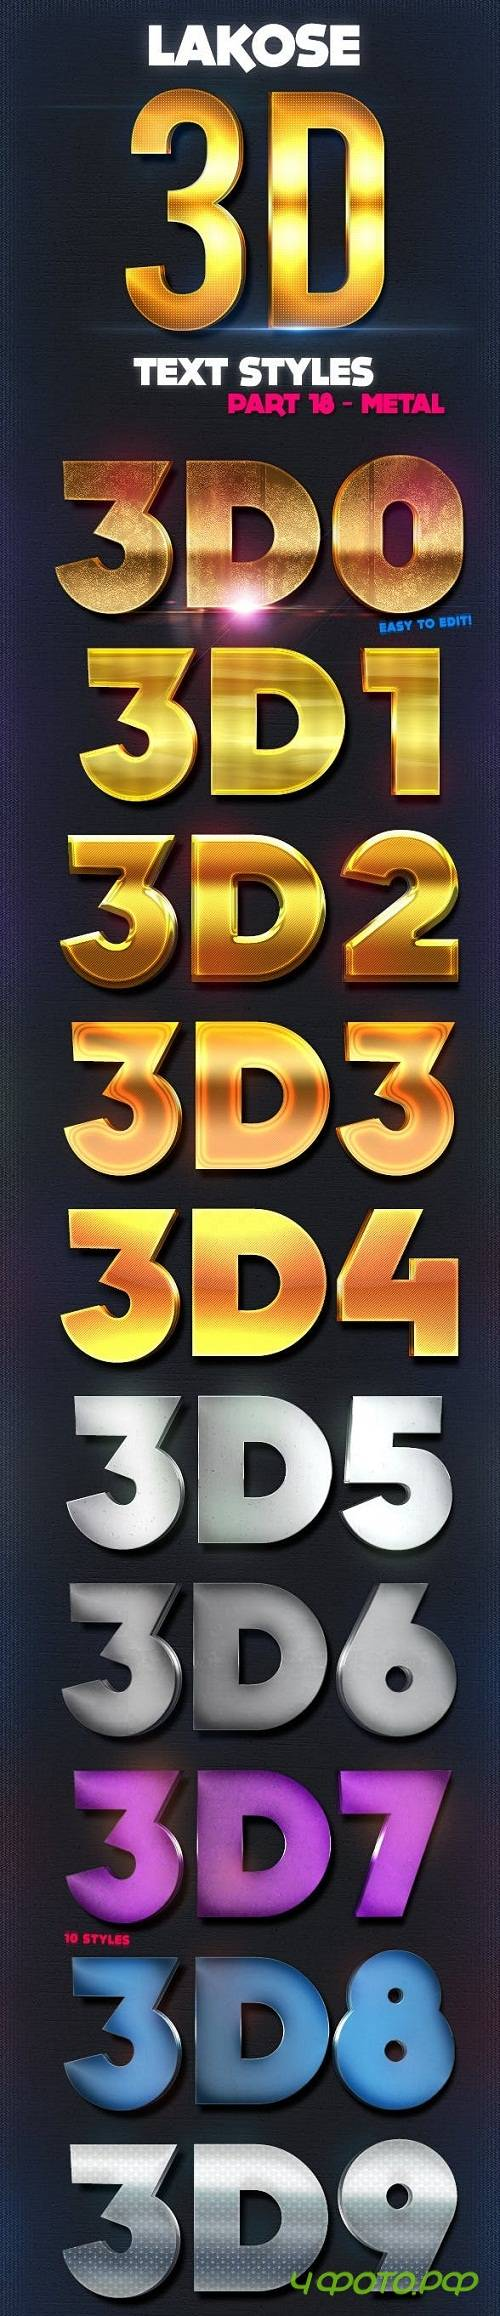 Lakose 3D Text Styles Part 18 9875047